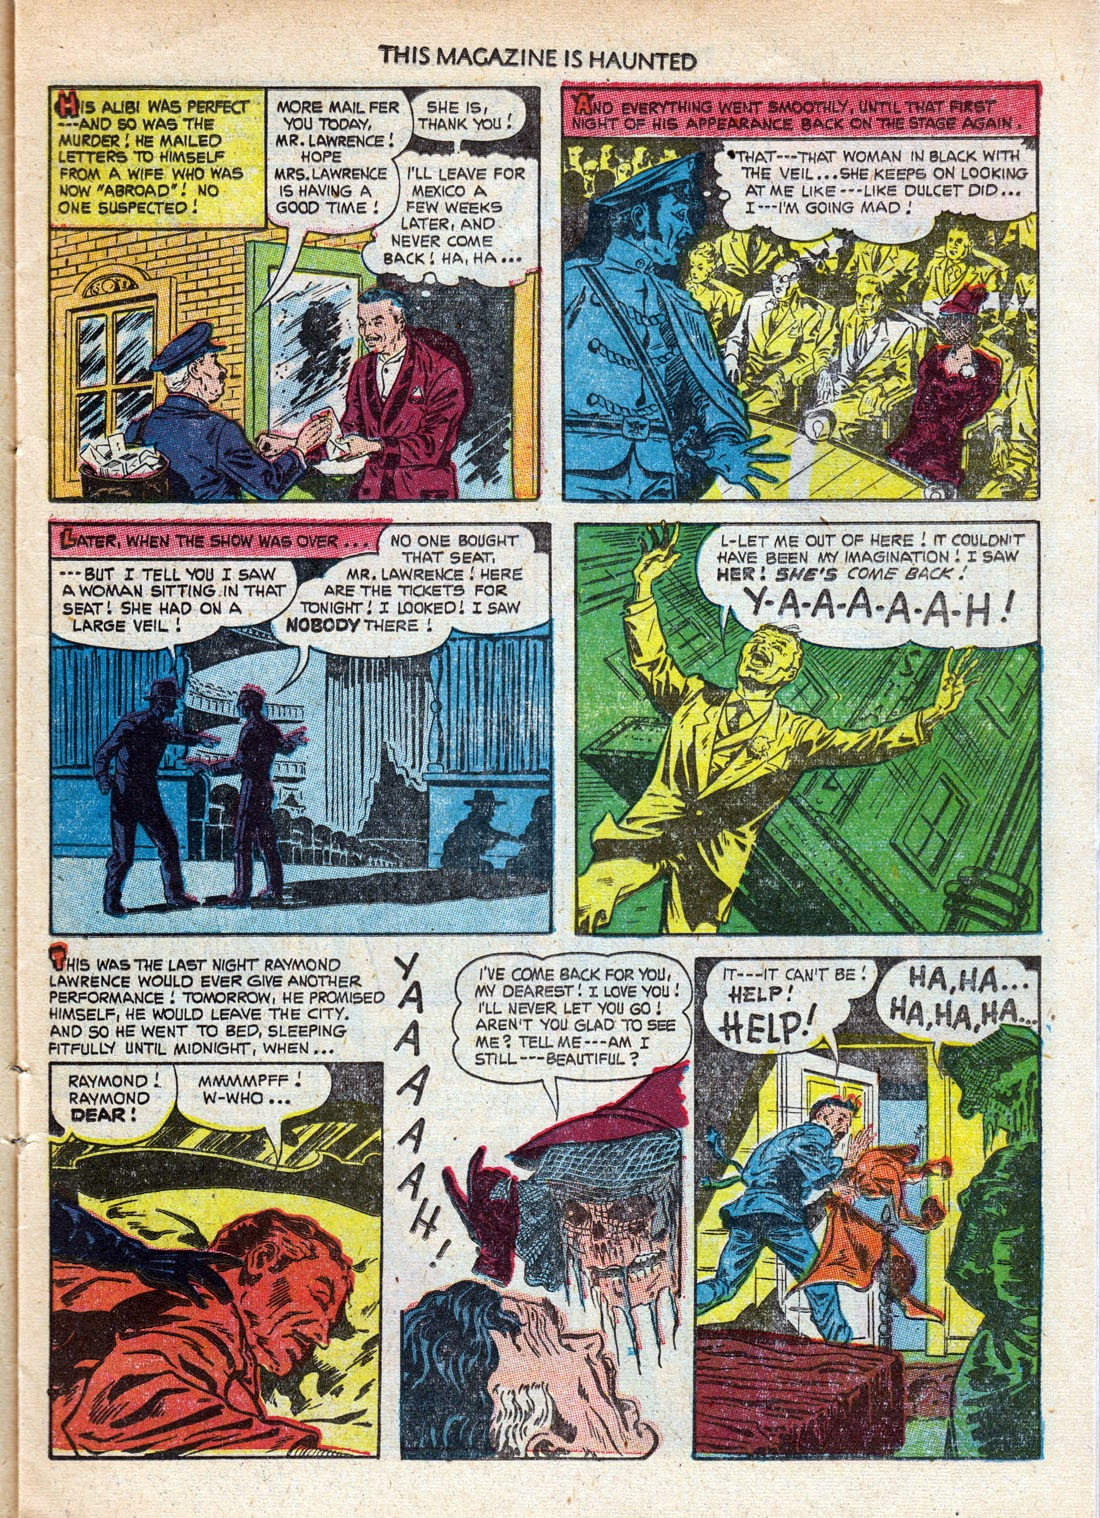 Read online This Magazine Is Haunted comic -  Issue #11 - 11